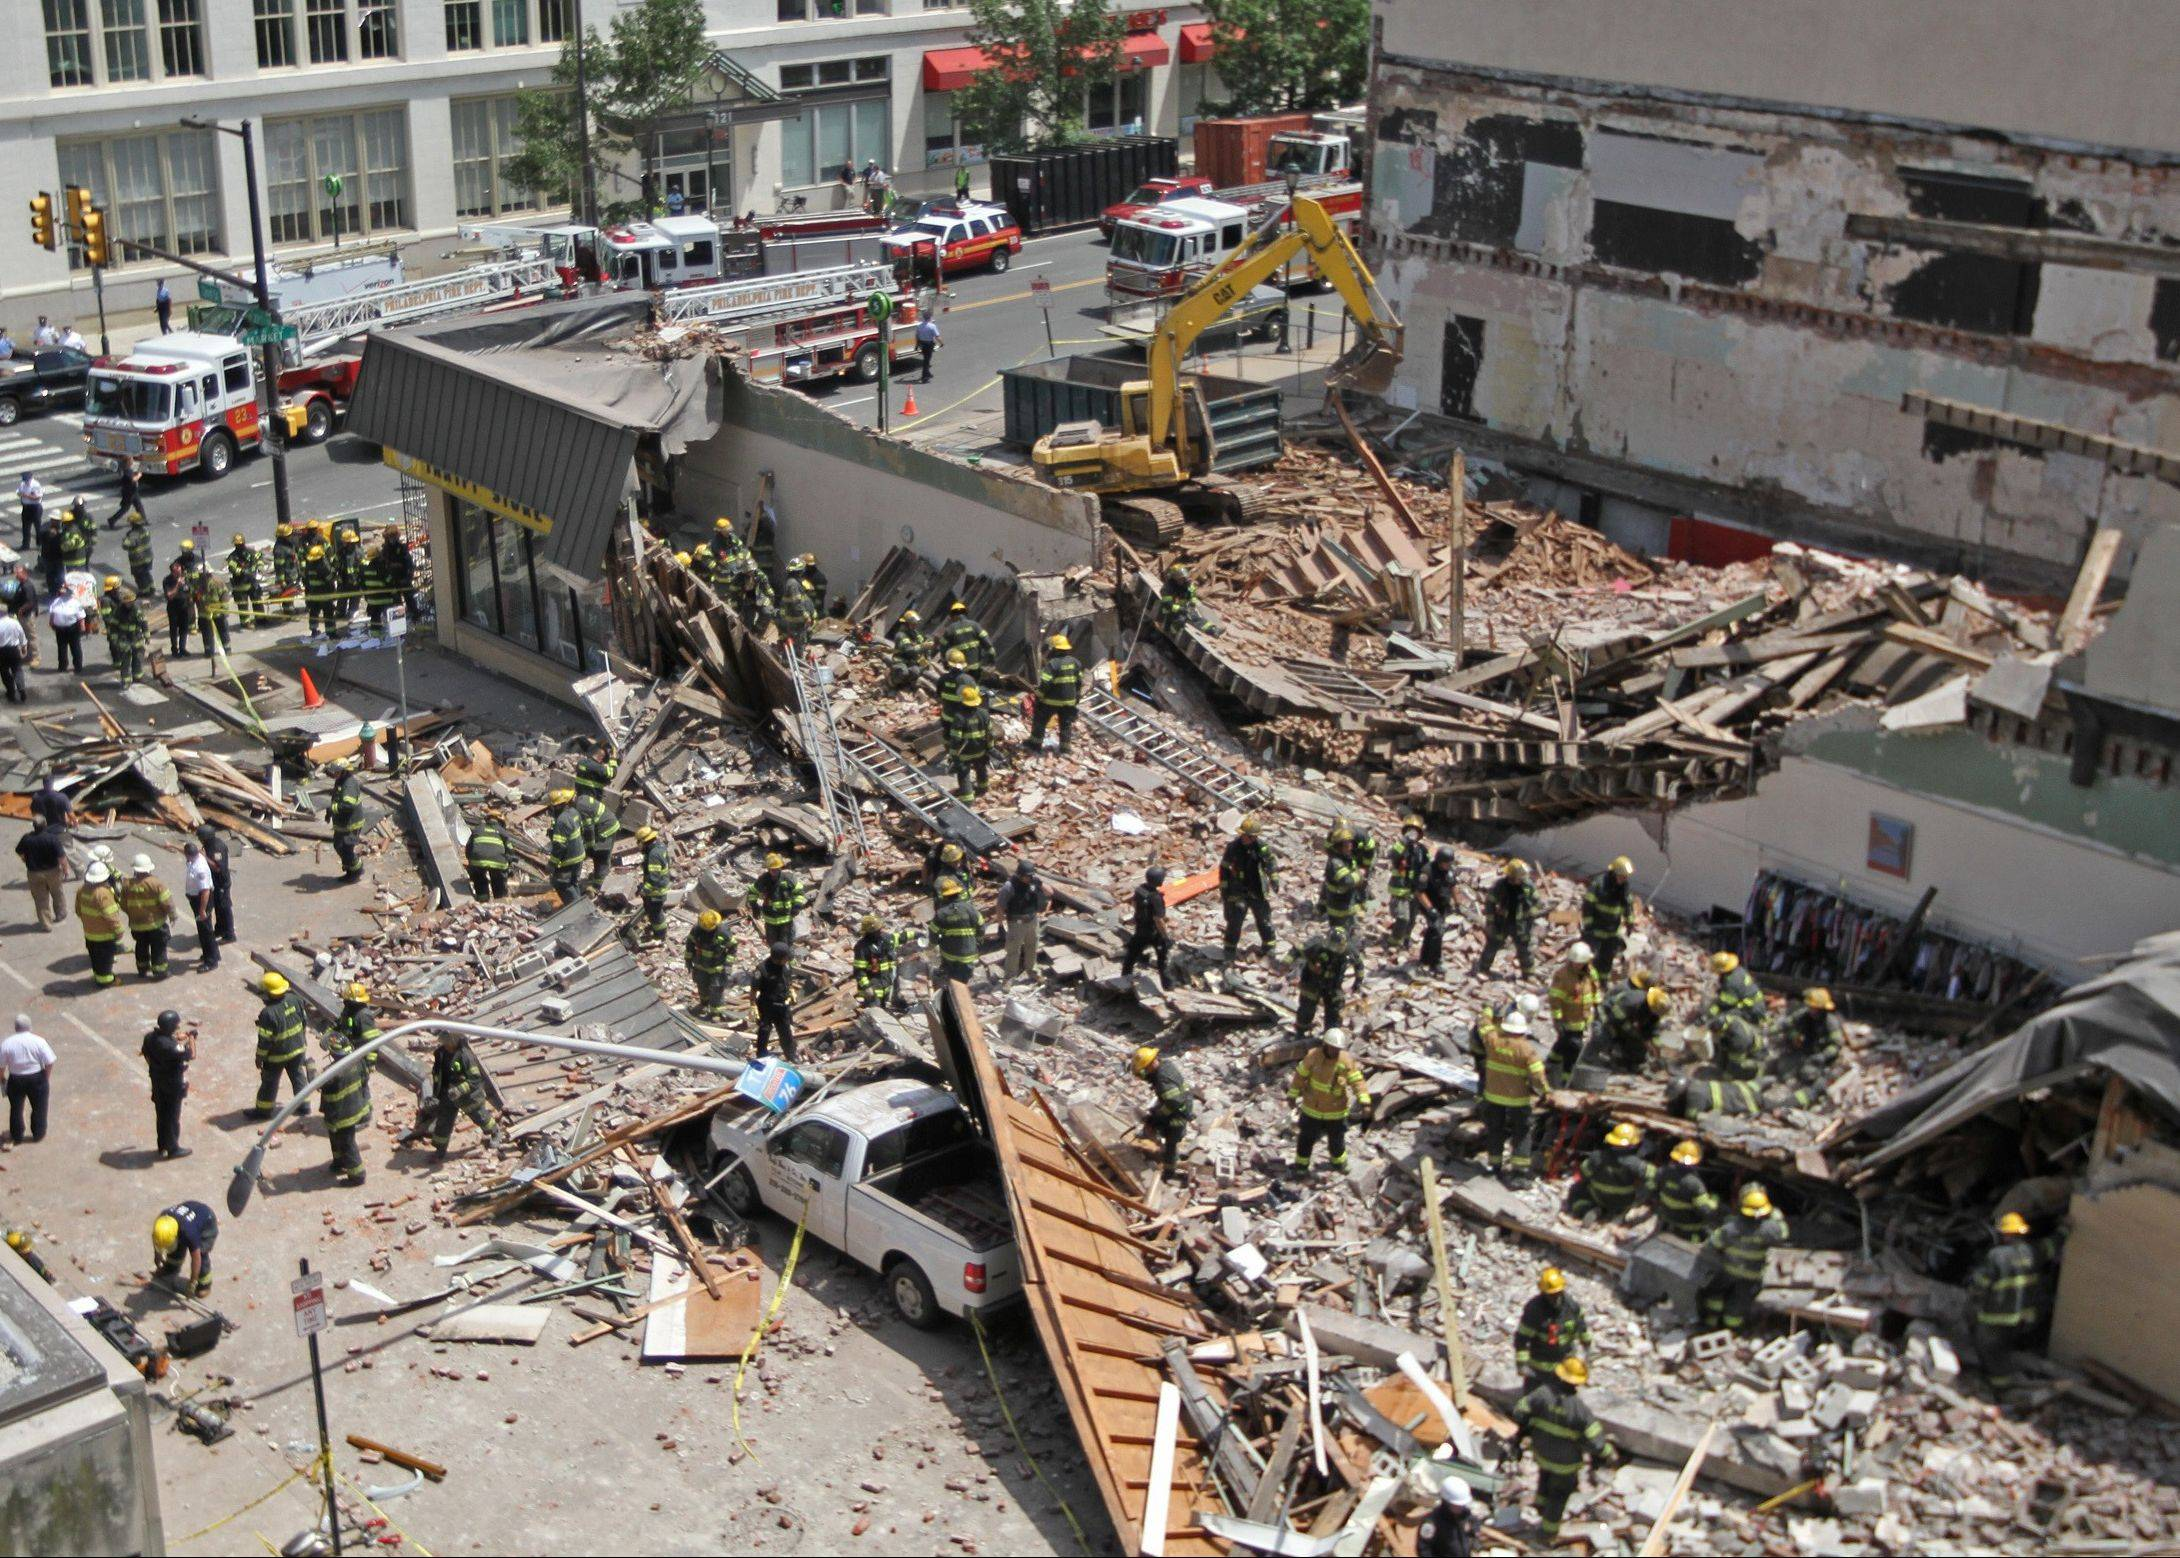 Rescue personnel search the scene of a building collapse Wednesday in downtown Philadelphia.